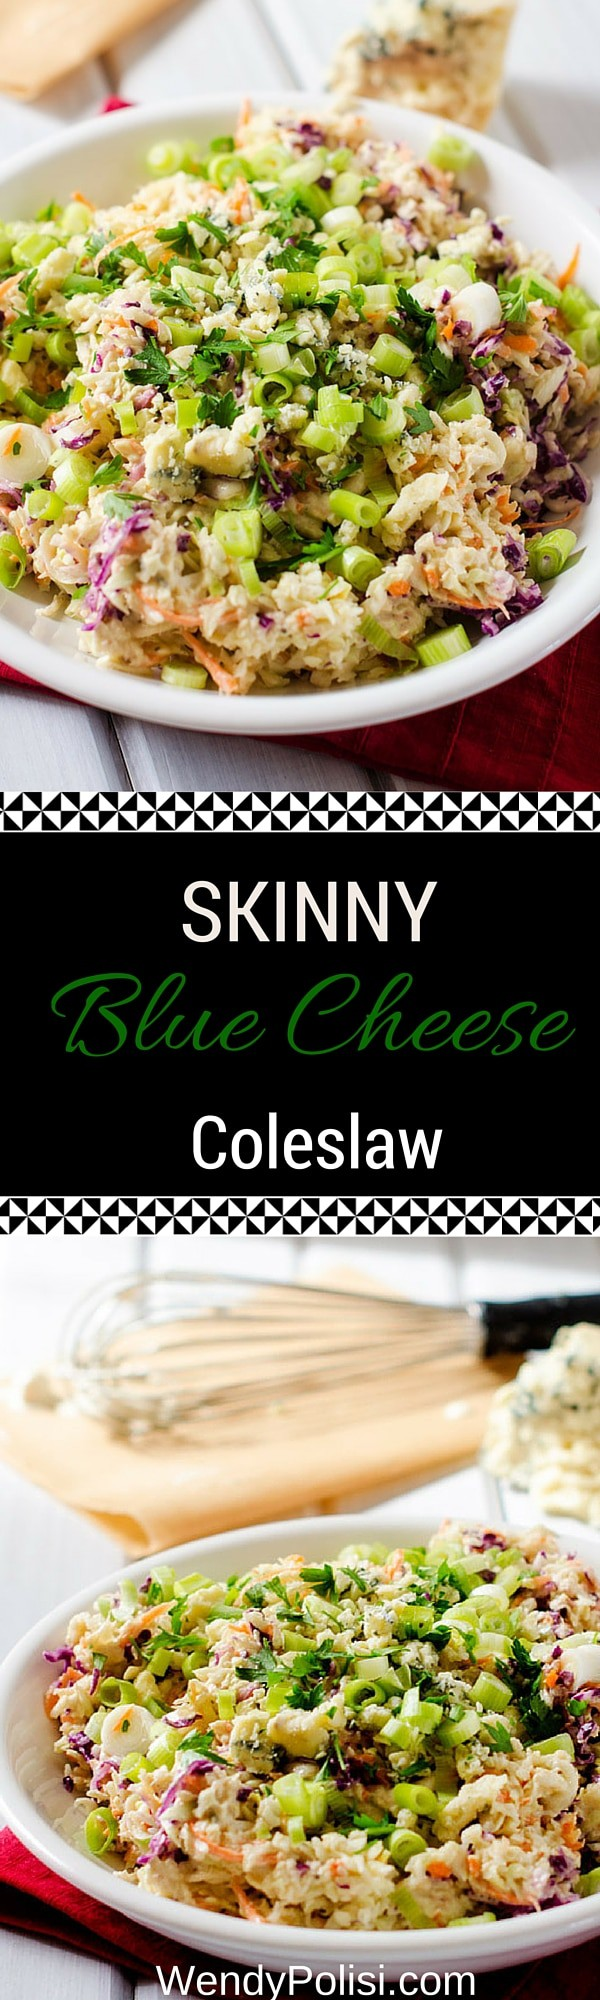 This Blue Cheese Coleslaw is a great way to mix up your cole slaw game. It is perfect as a side dish or added to sandwiches and wraps. This easy to make recipe is also surprisingly healthy, thanks to the use of Greek Yogurt.